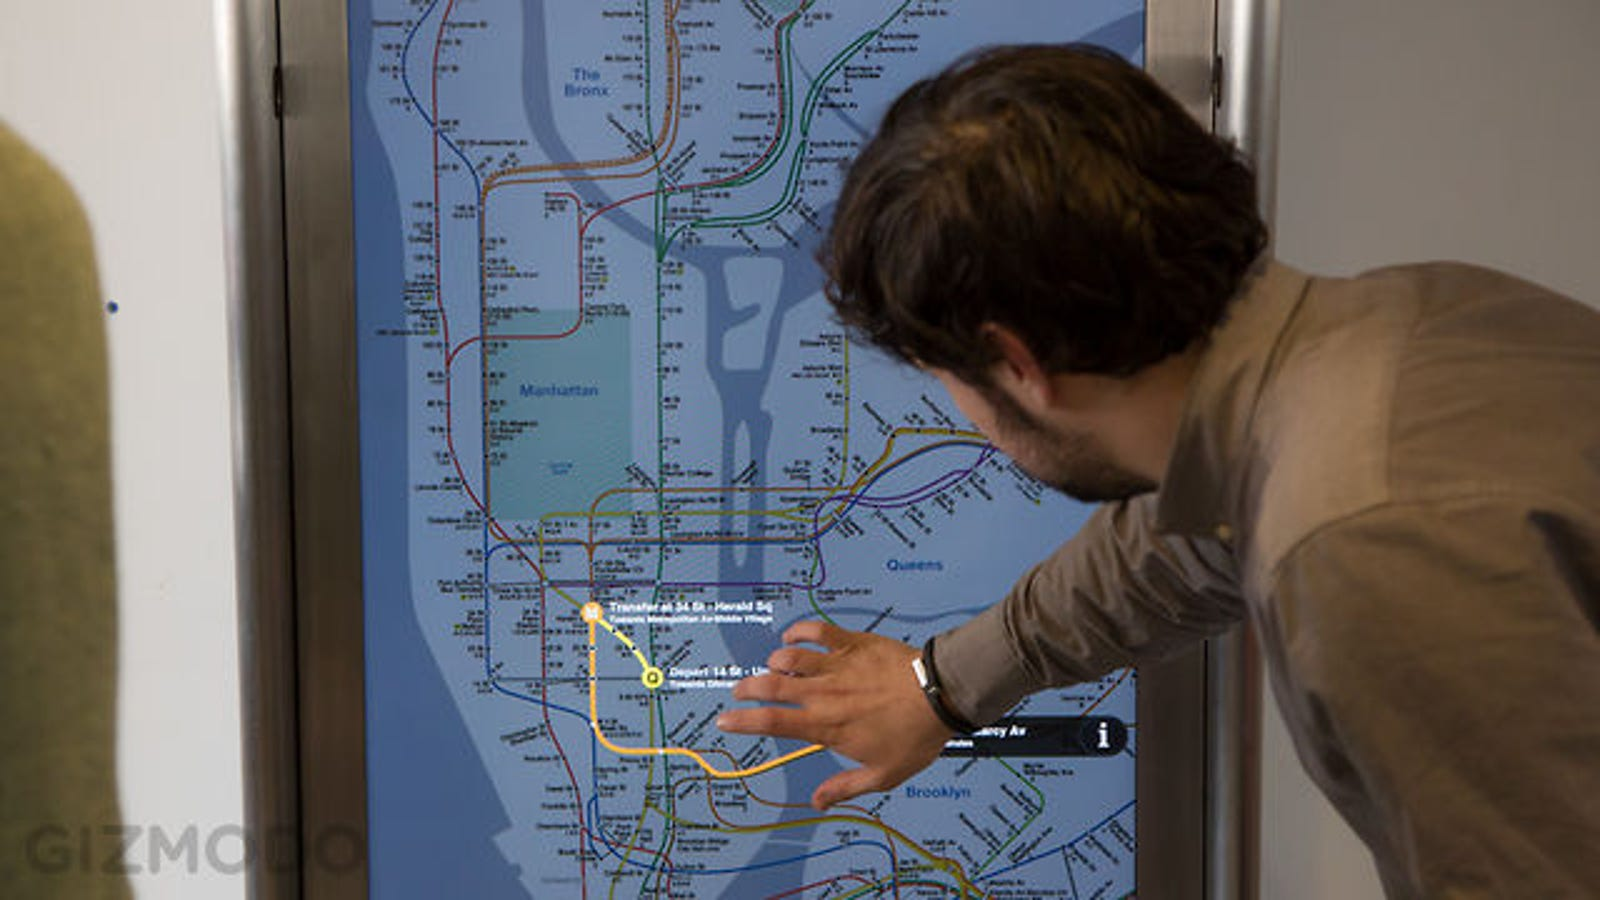 The Indestructible Touchscreen Kiosks That Will Take Over New York's Subways